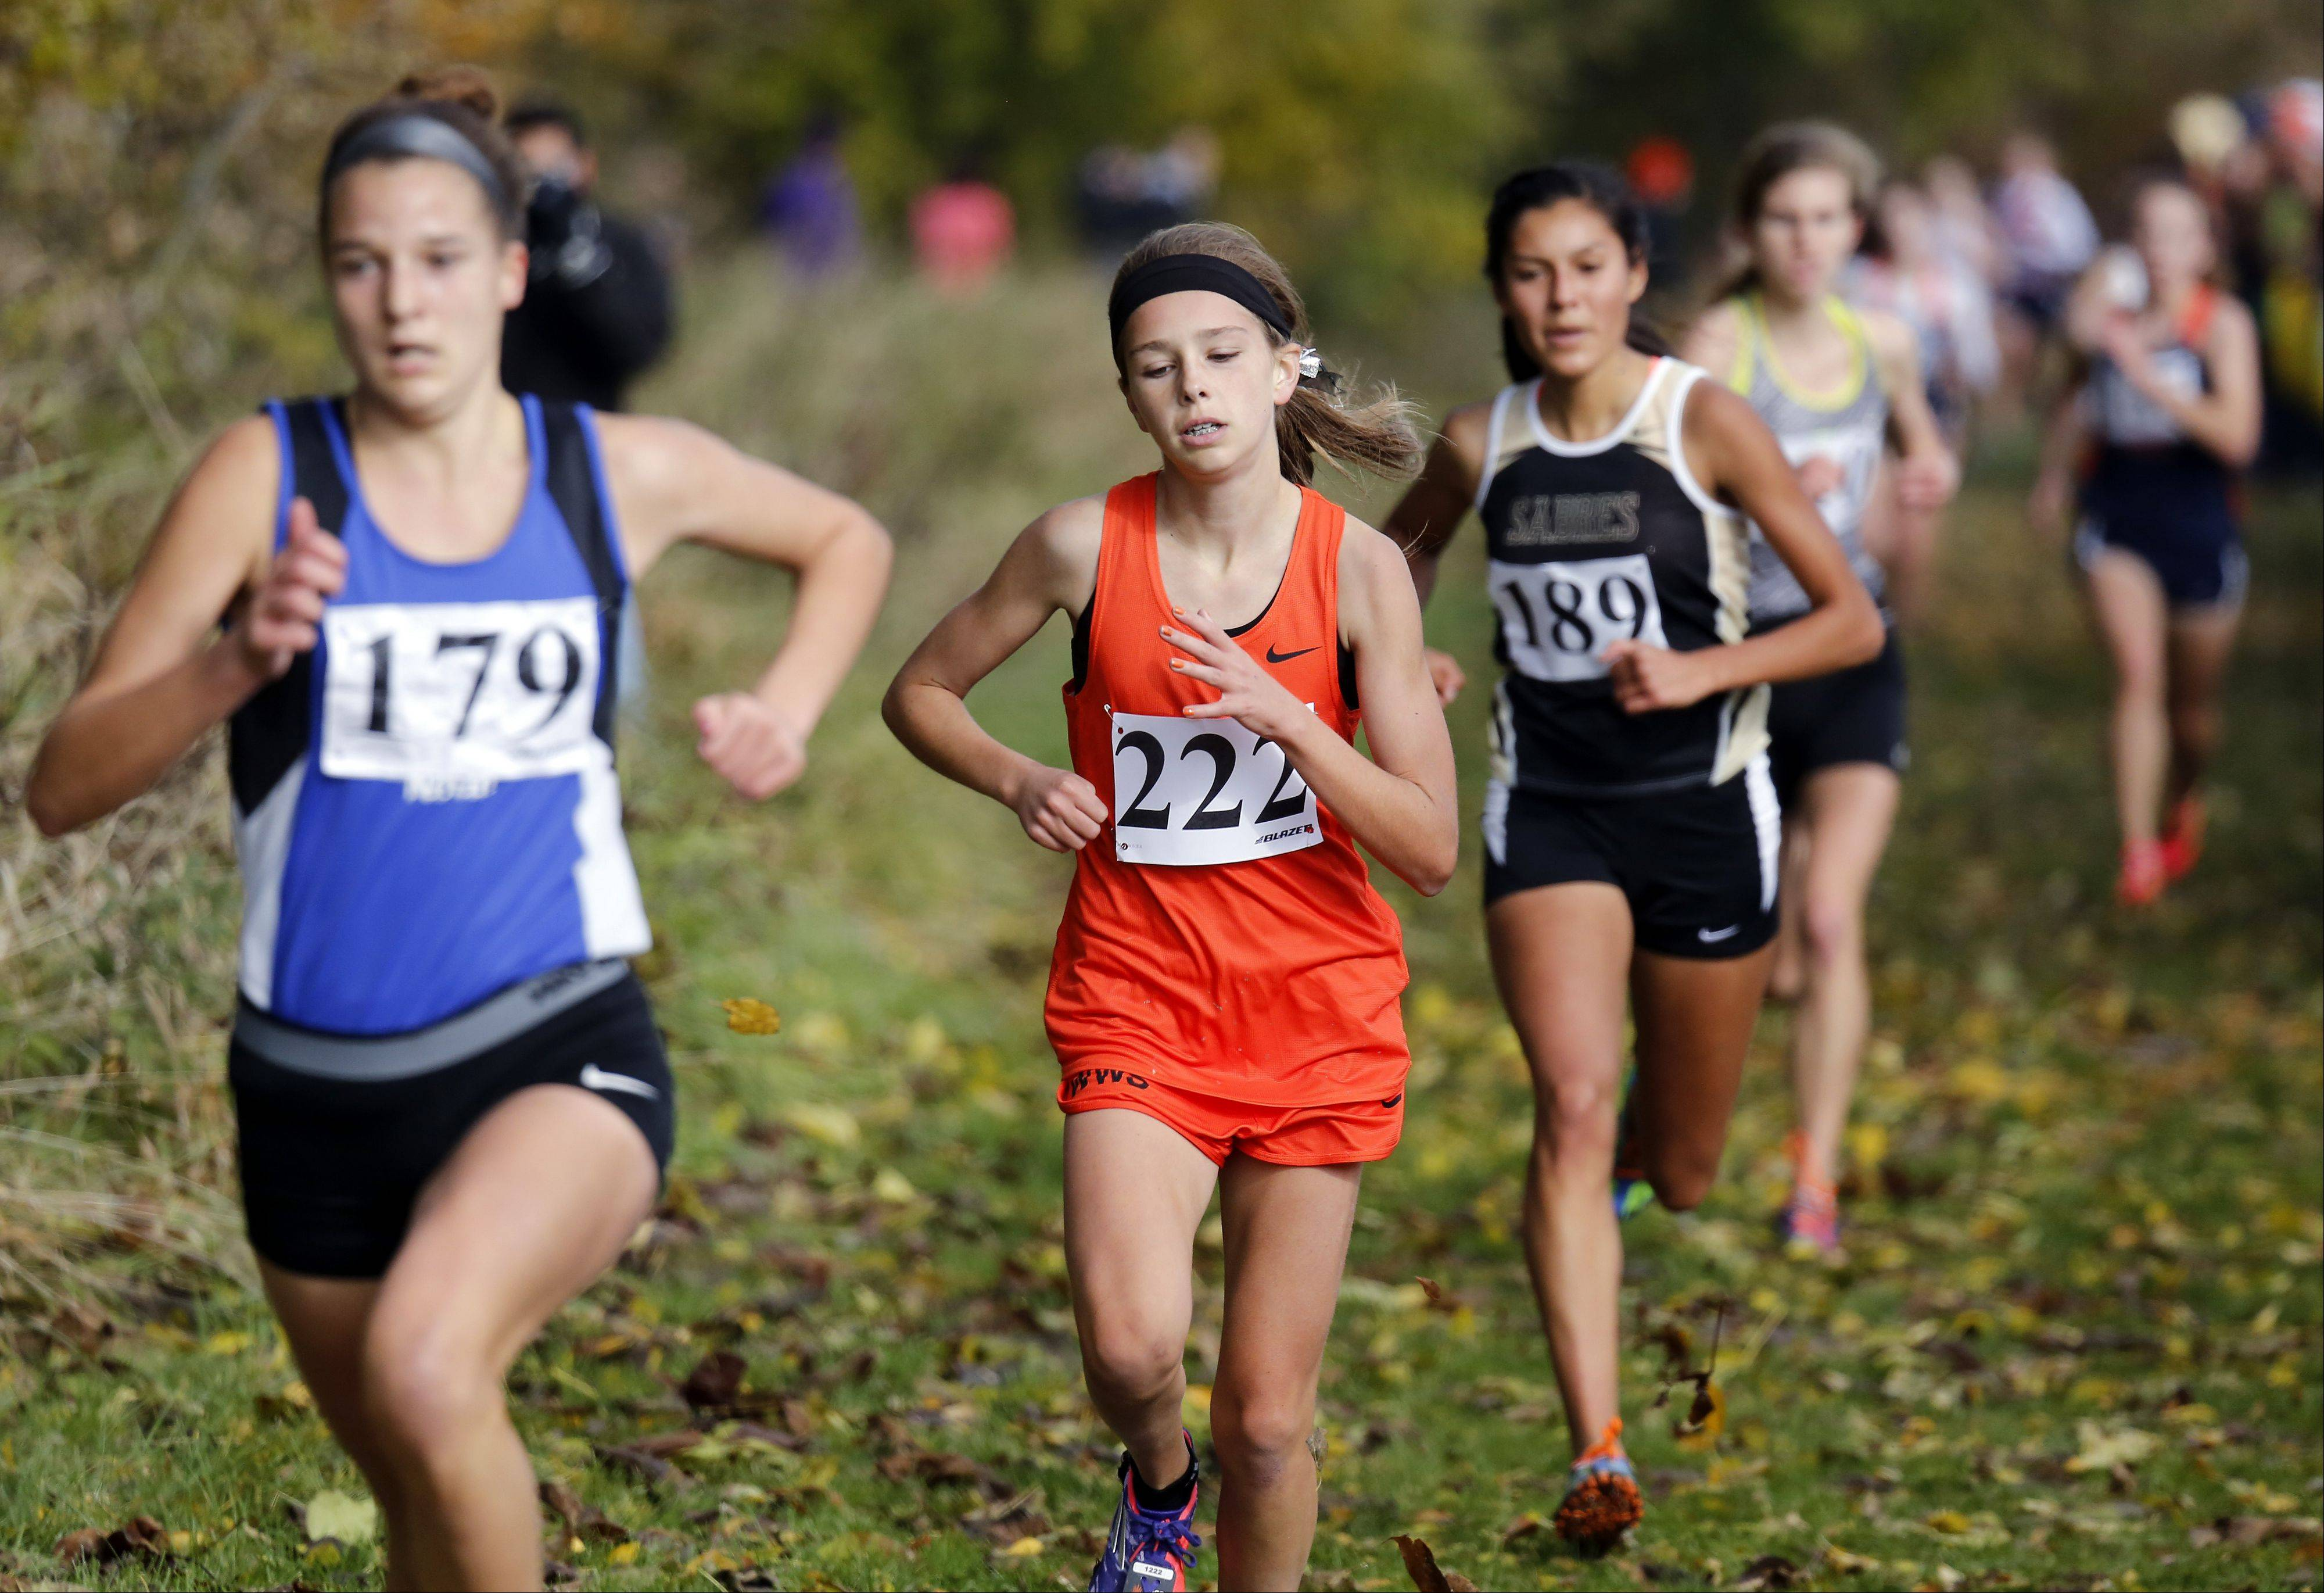 Allison McGrath of Wheaton Warrenville South heads to fifth place during the Waubonsie Valley girls cross country Sectional in Aurora.